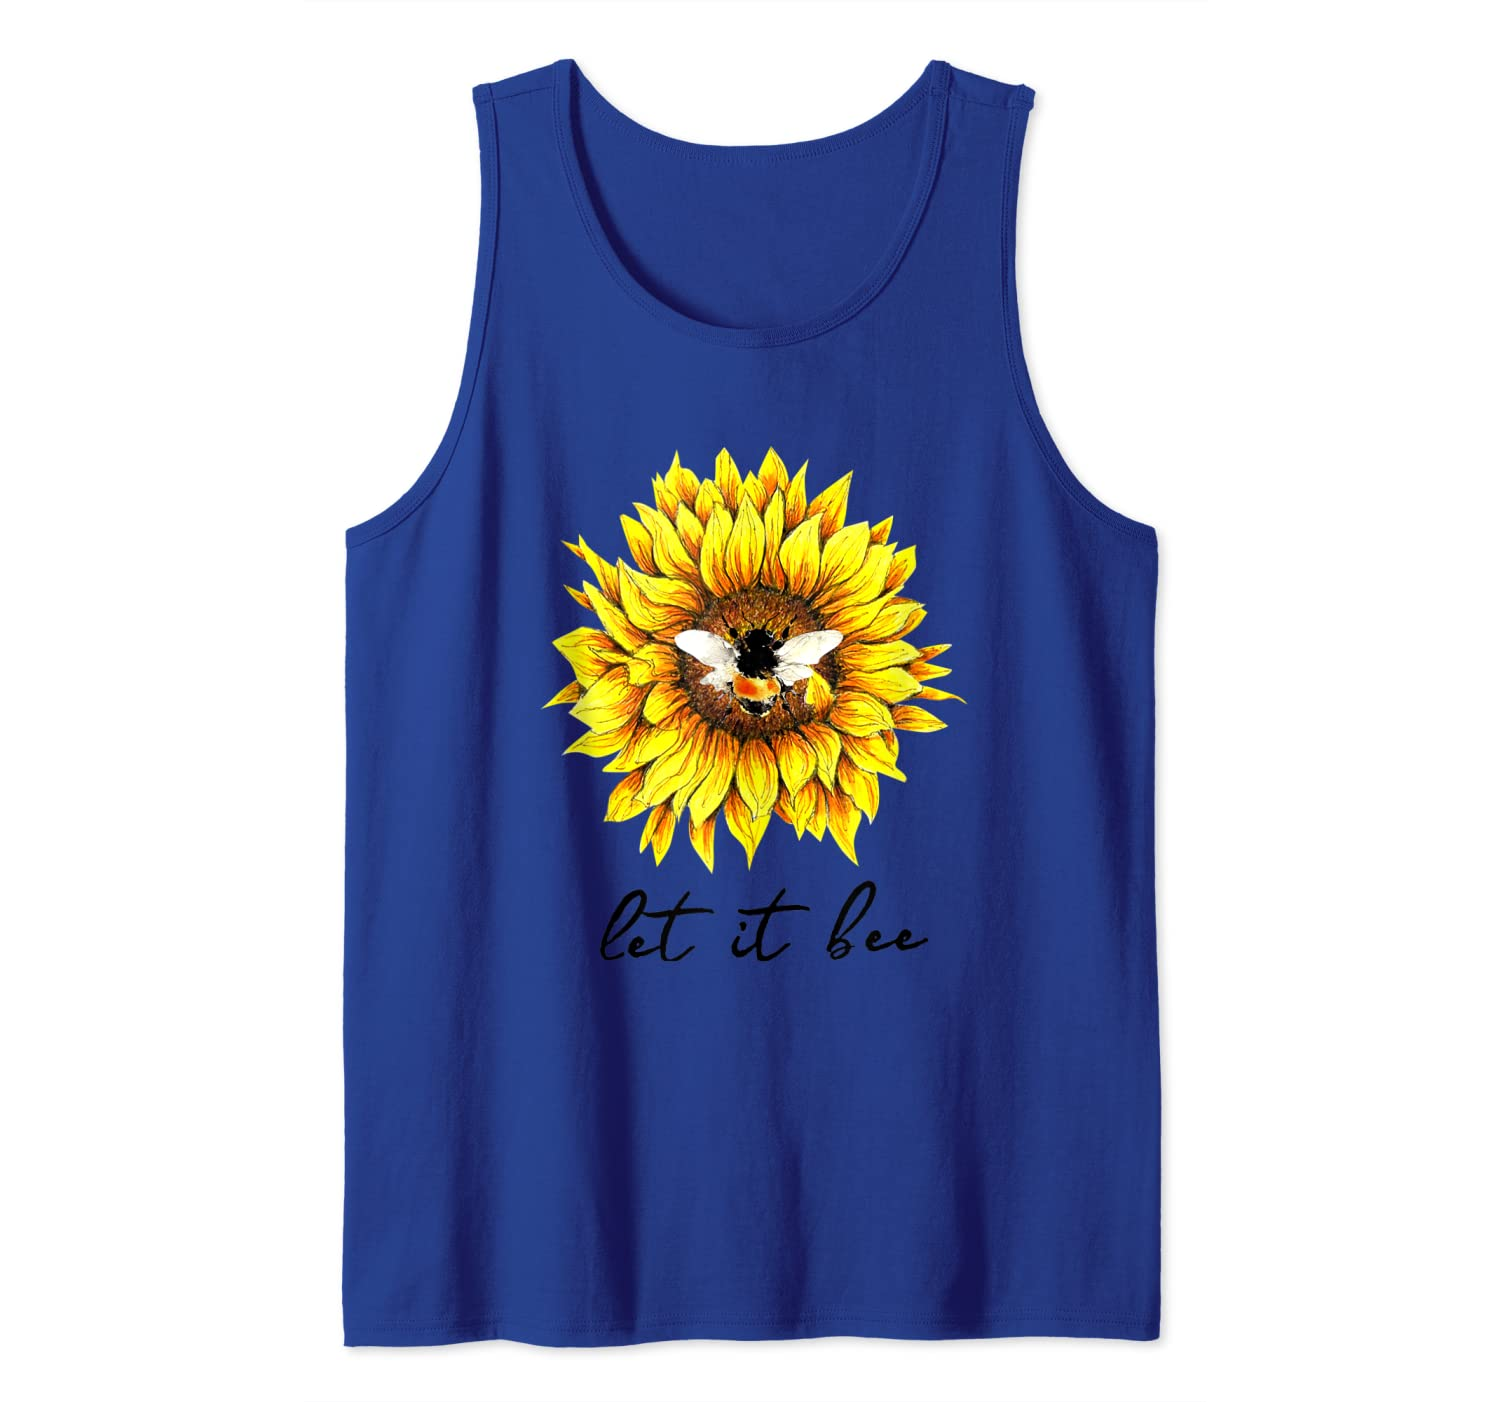 Let It Bee Sunflower Gift For Shirts